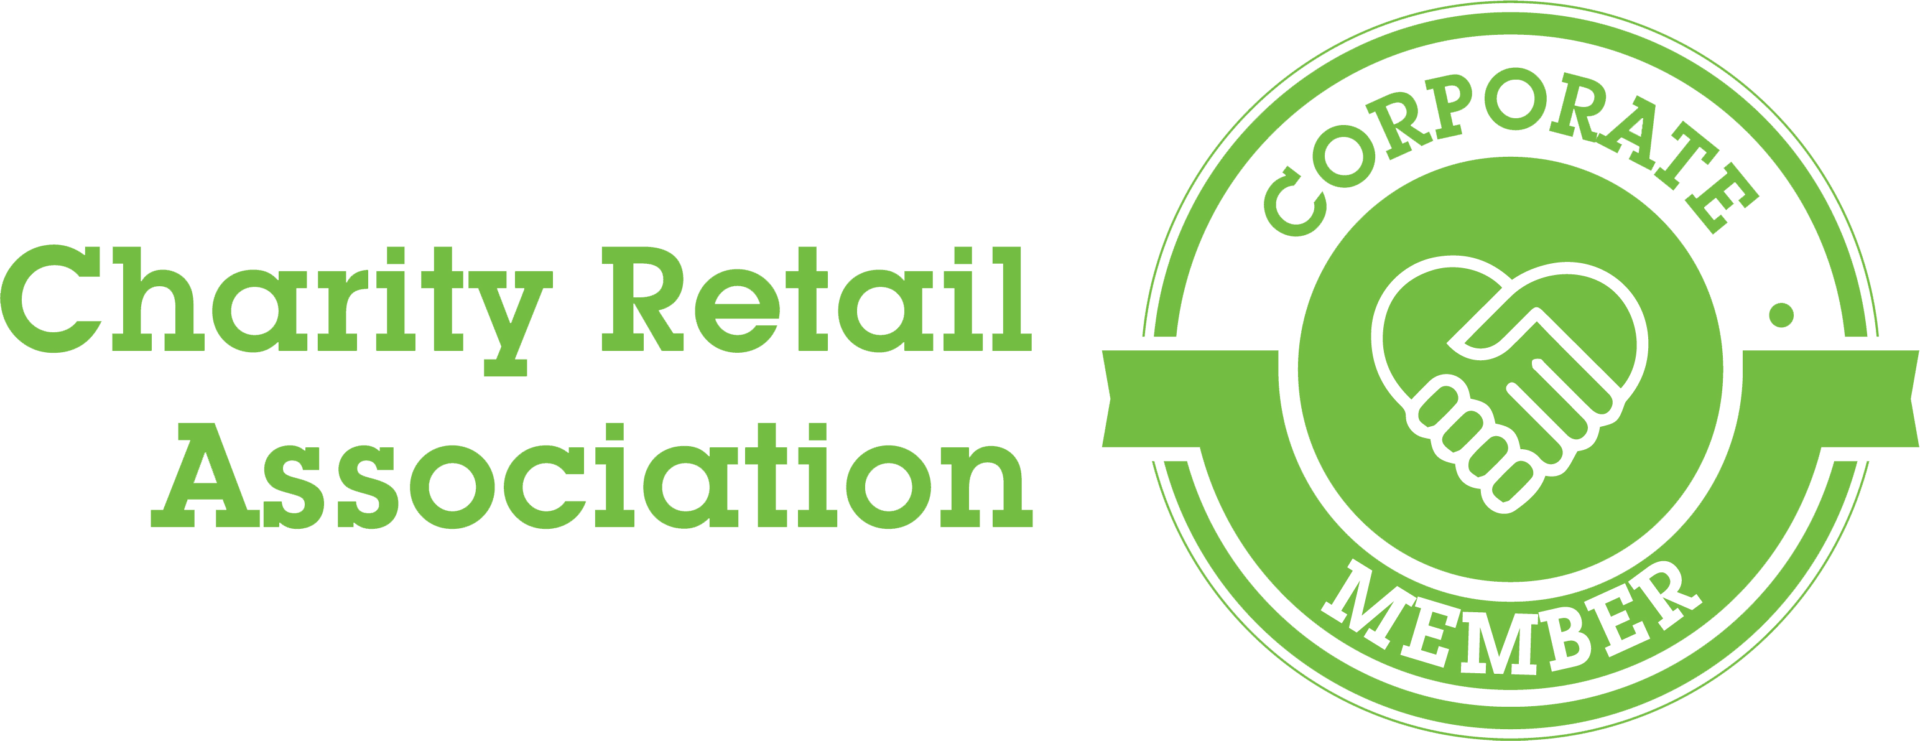 We're Proud Members of the Charity Retail Association (CRA)